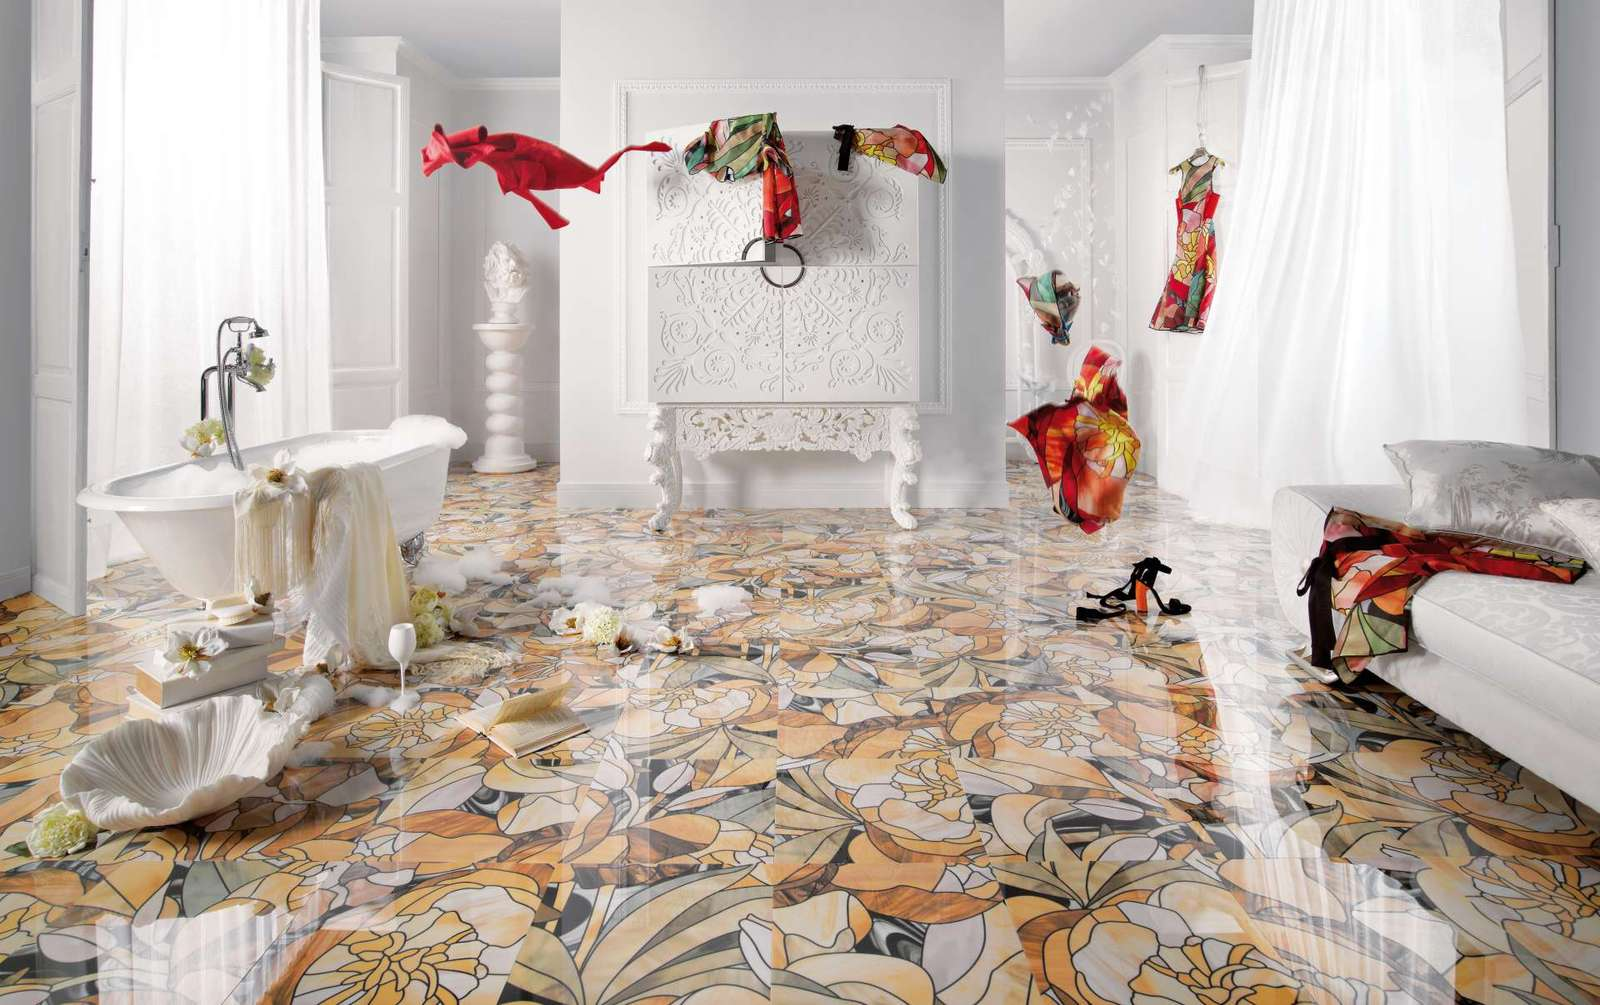 25 Beautiful Tile Flooring Ideas for Living Room, Kitchen and ... on beautiful bathrooms on pinterest, beautiful living room, beautiful bath designs, beautiful computer designs, beautiful stair designs, beautiful water designs, beautiful tree house designs, beautiful attic designs, beautiful bird houses designs, beautiful elegant furniture, beautiful clothing designs, beautiful house plans designs, beautiful design line, beautiful pantry designs, beautiful bathrooms on a budget, bedroom designs, beautiful modern sofa designs, kitchen designs, beautiful master bathrooms, beautiful marble bathrooms,